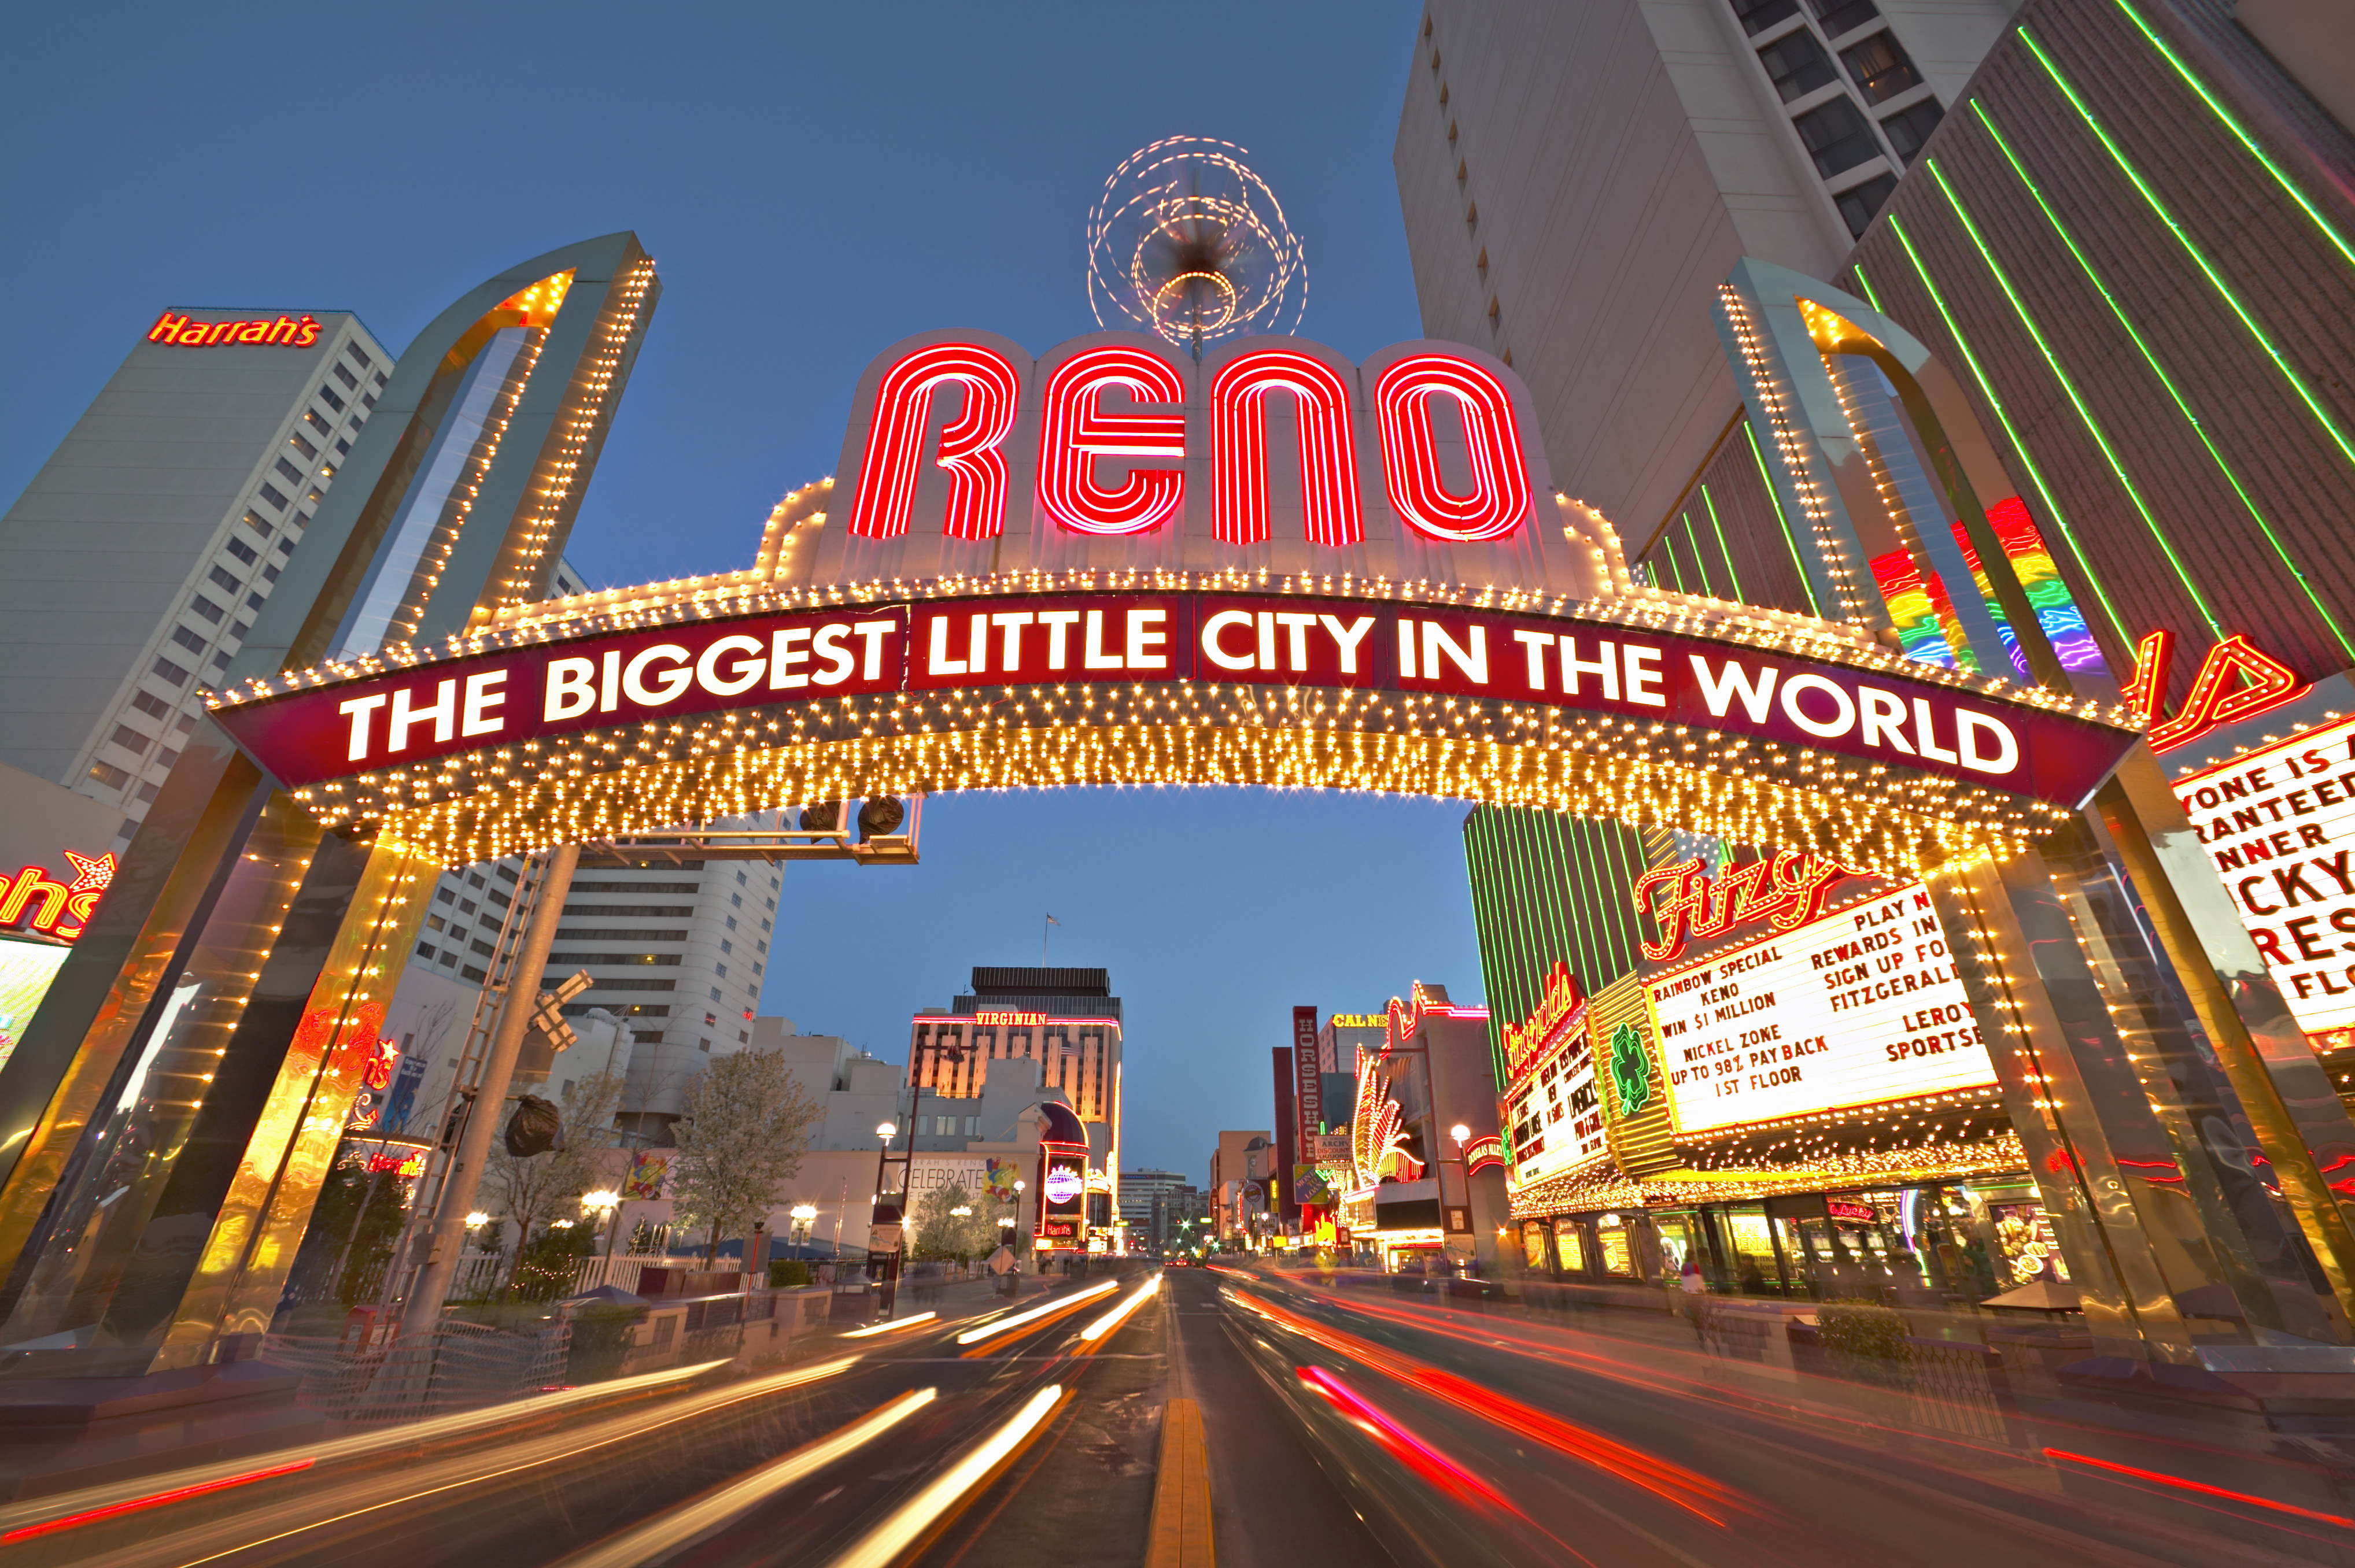 20 Years After Oklahoma City Bombing Domestic Terror Threat Remains moreover Authentic Historic Virginia City Nevada also Localmaps moreover Coolest Hotel Pools Kids Orlando Images as well Neon Arch Sign In Reno 2. on reno downtown sites